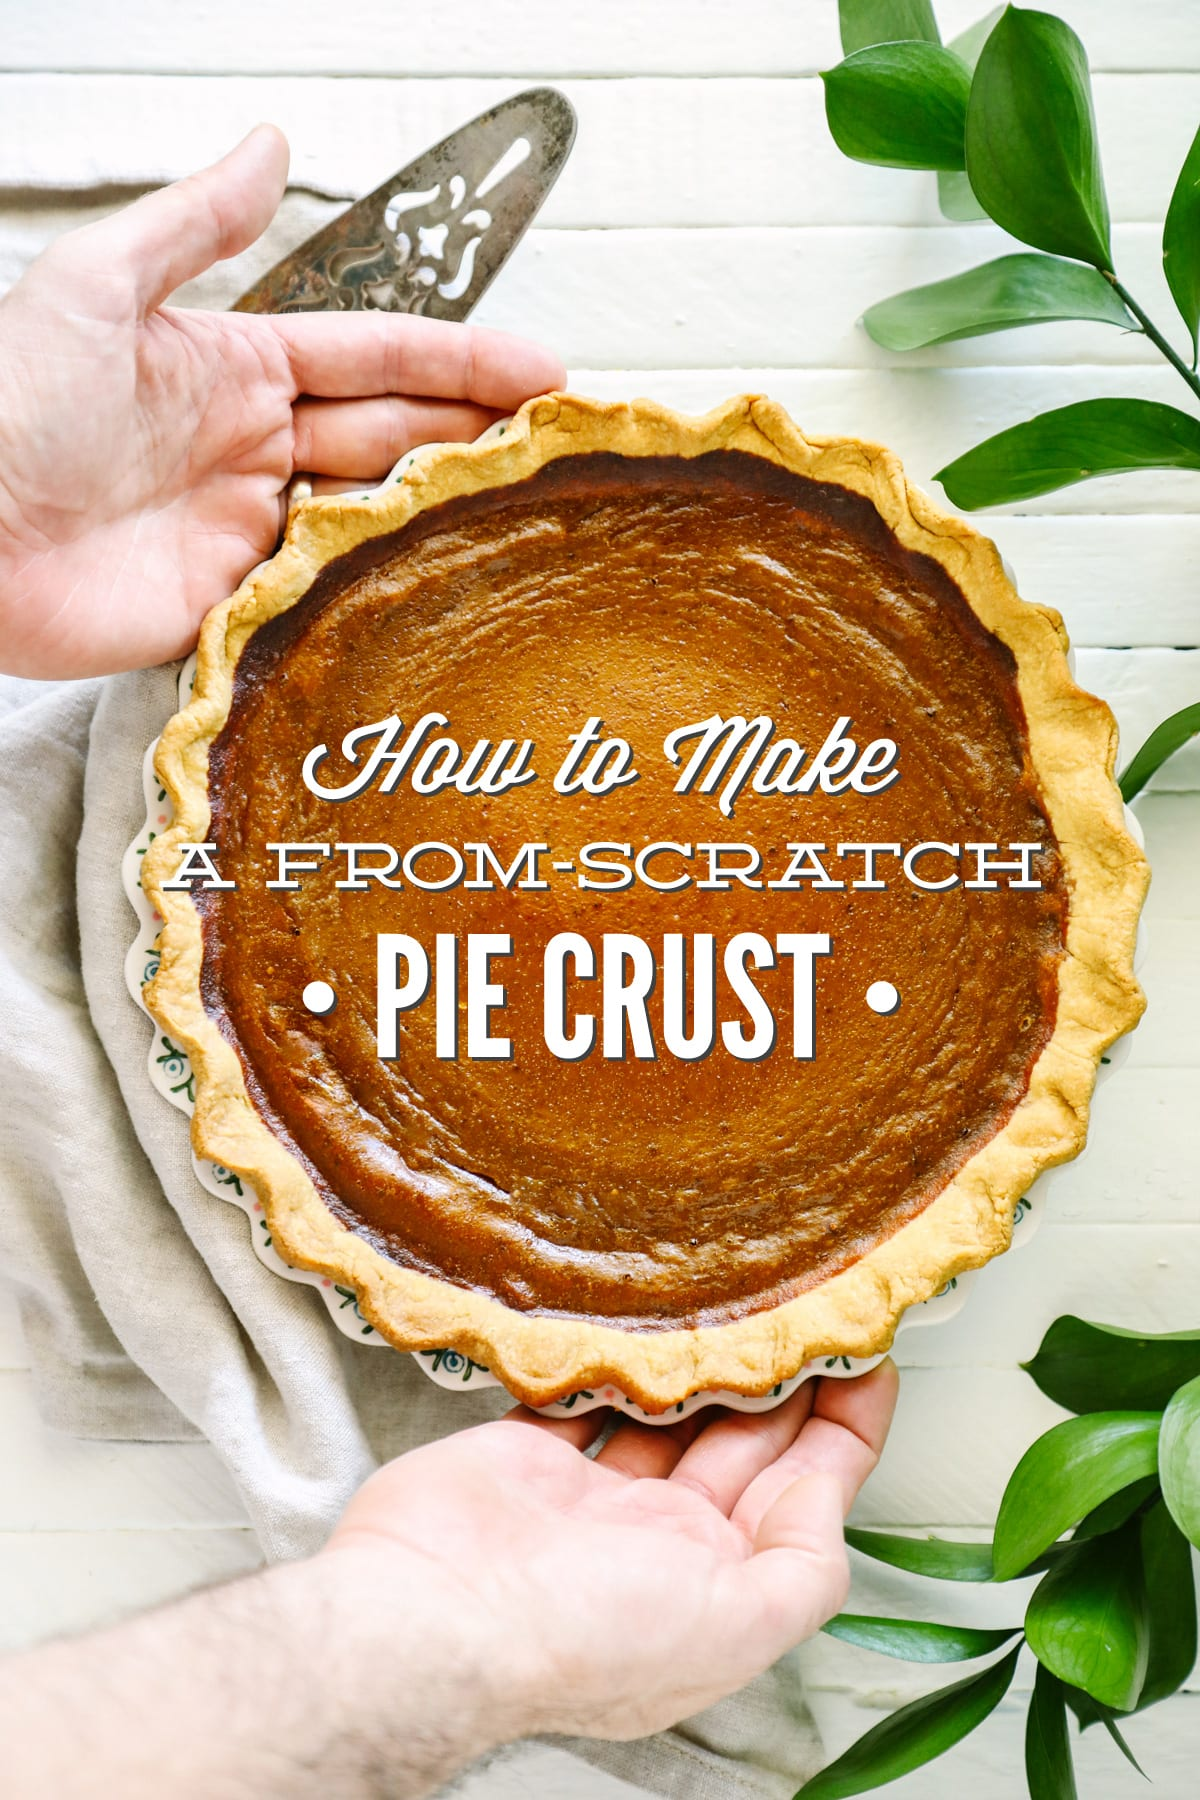 How to Make a From-Scratch Pie Crust